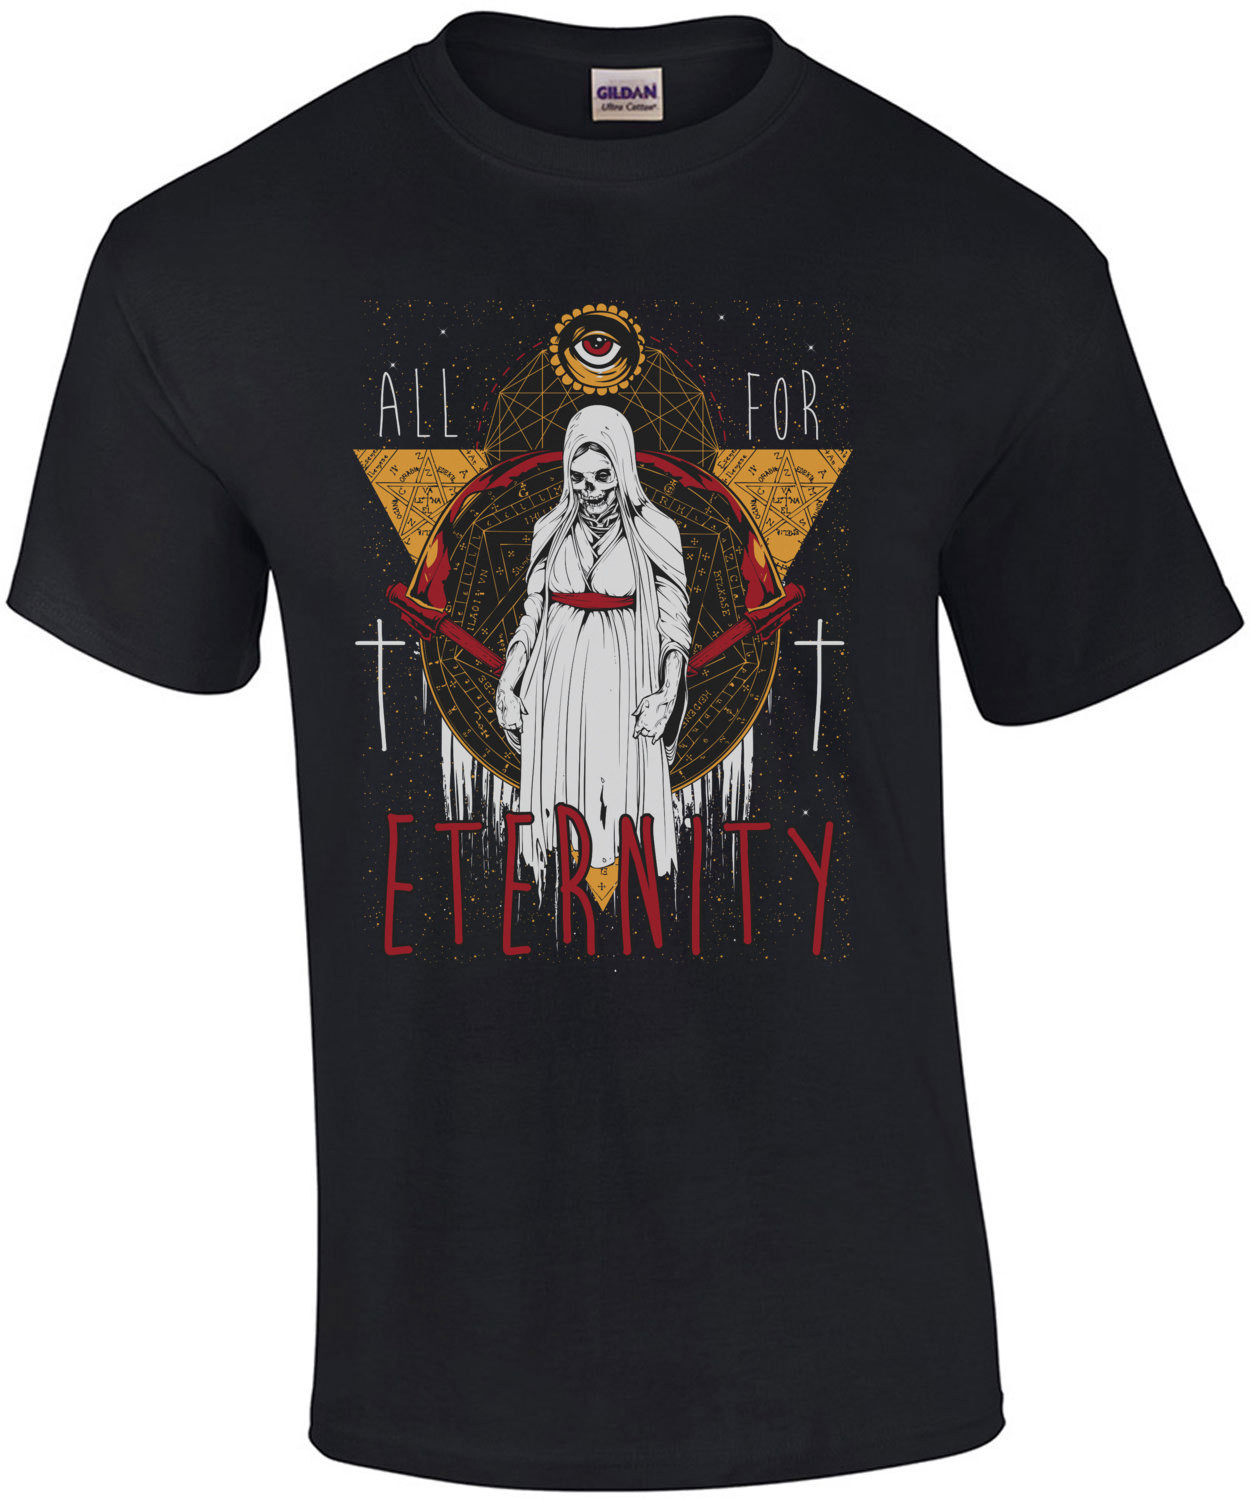 All For Eternity Gothic Grim Reaper T-Shirt